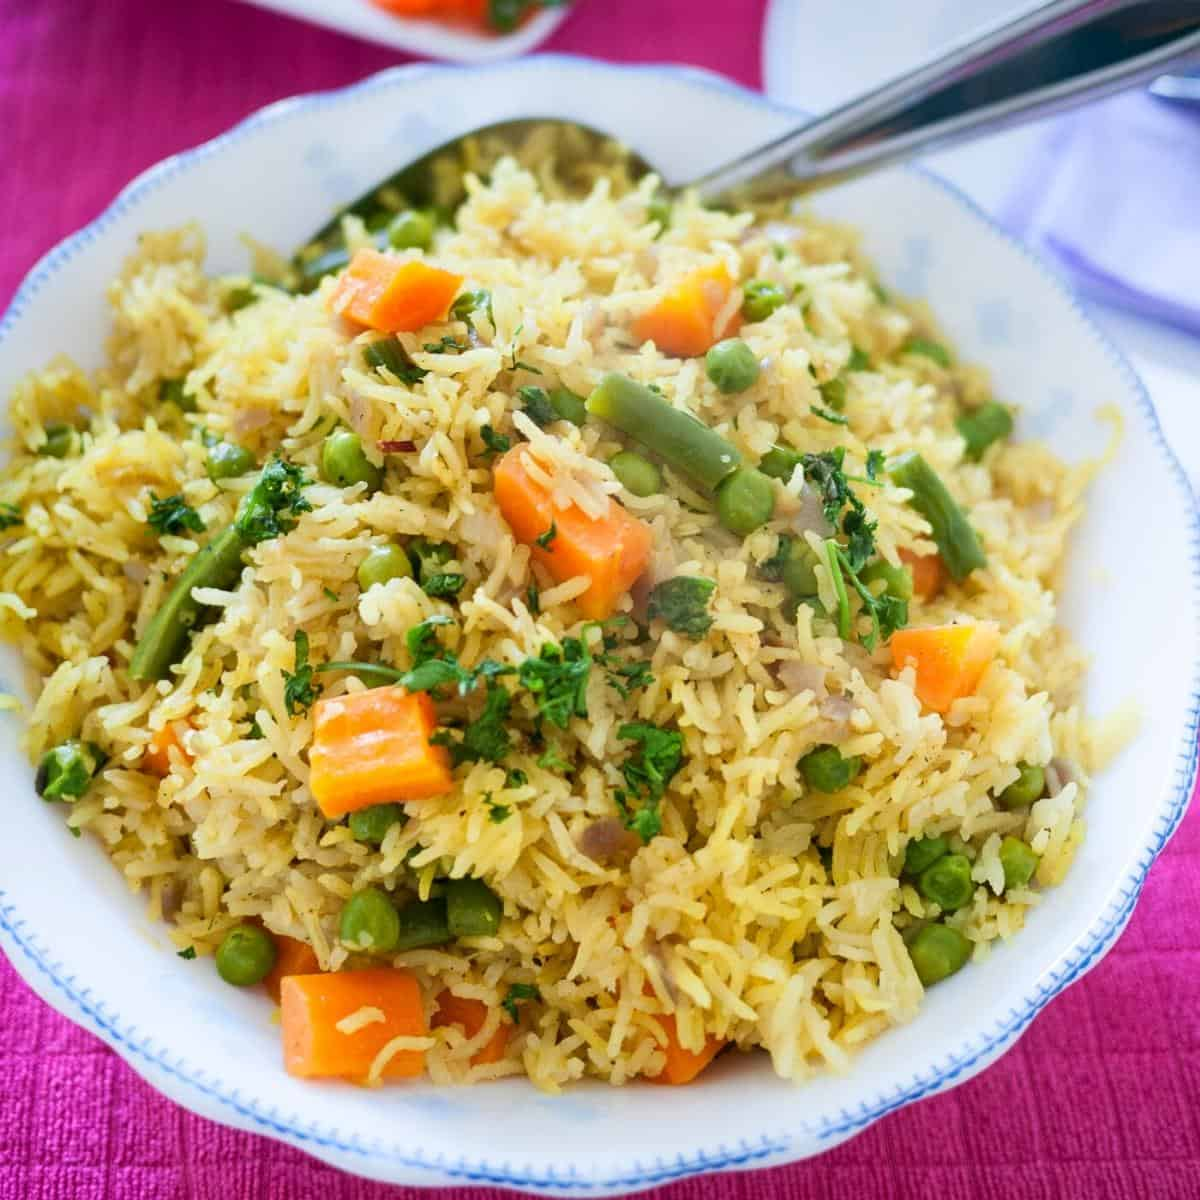 A bowl with vegetable rice